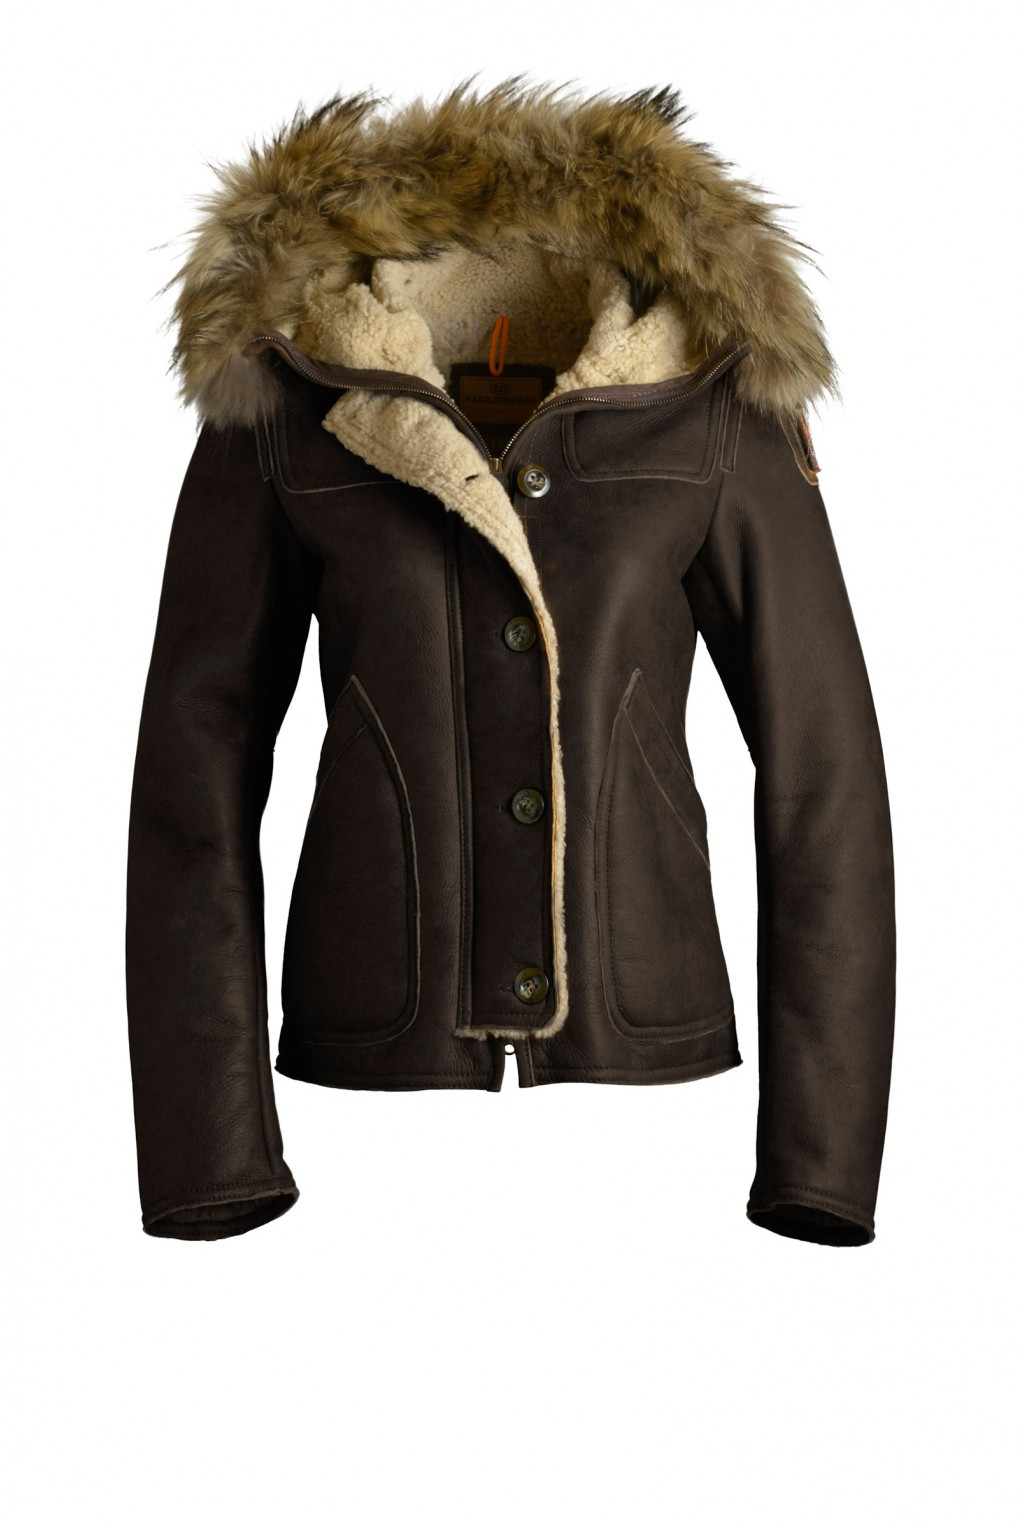 parajumpers VANCOUVER woman outerwear Chestnut